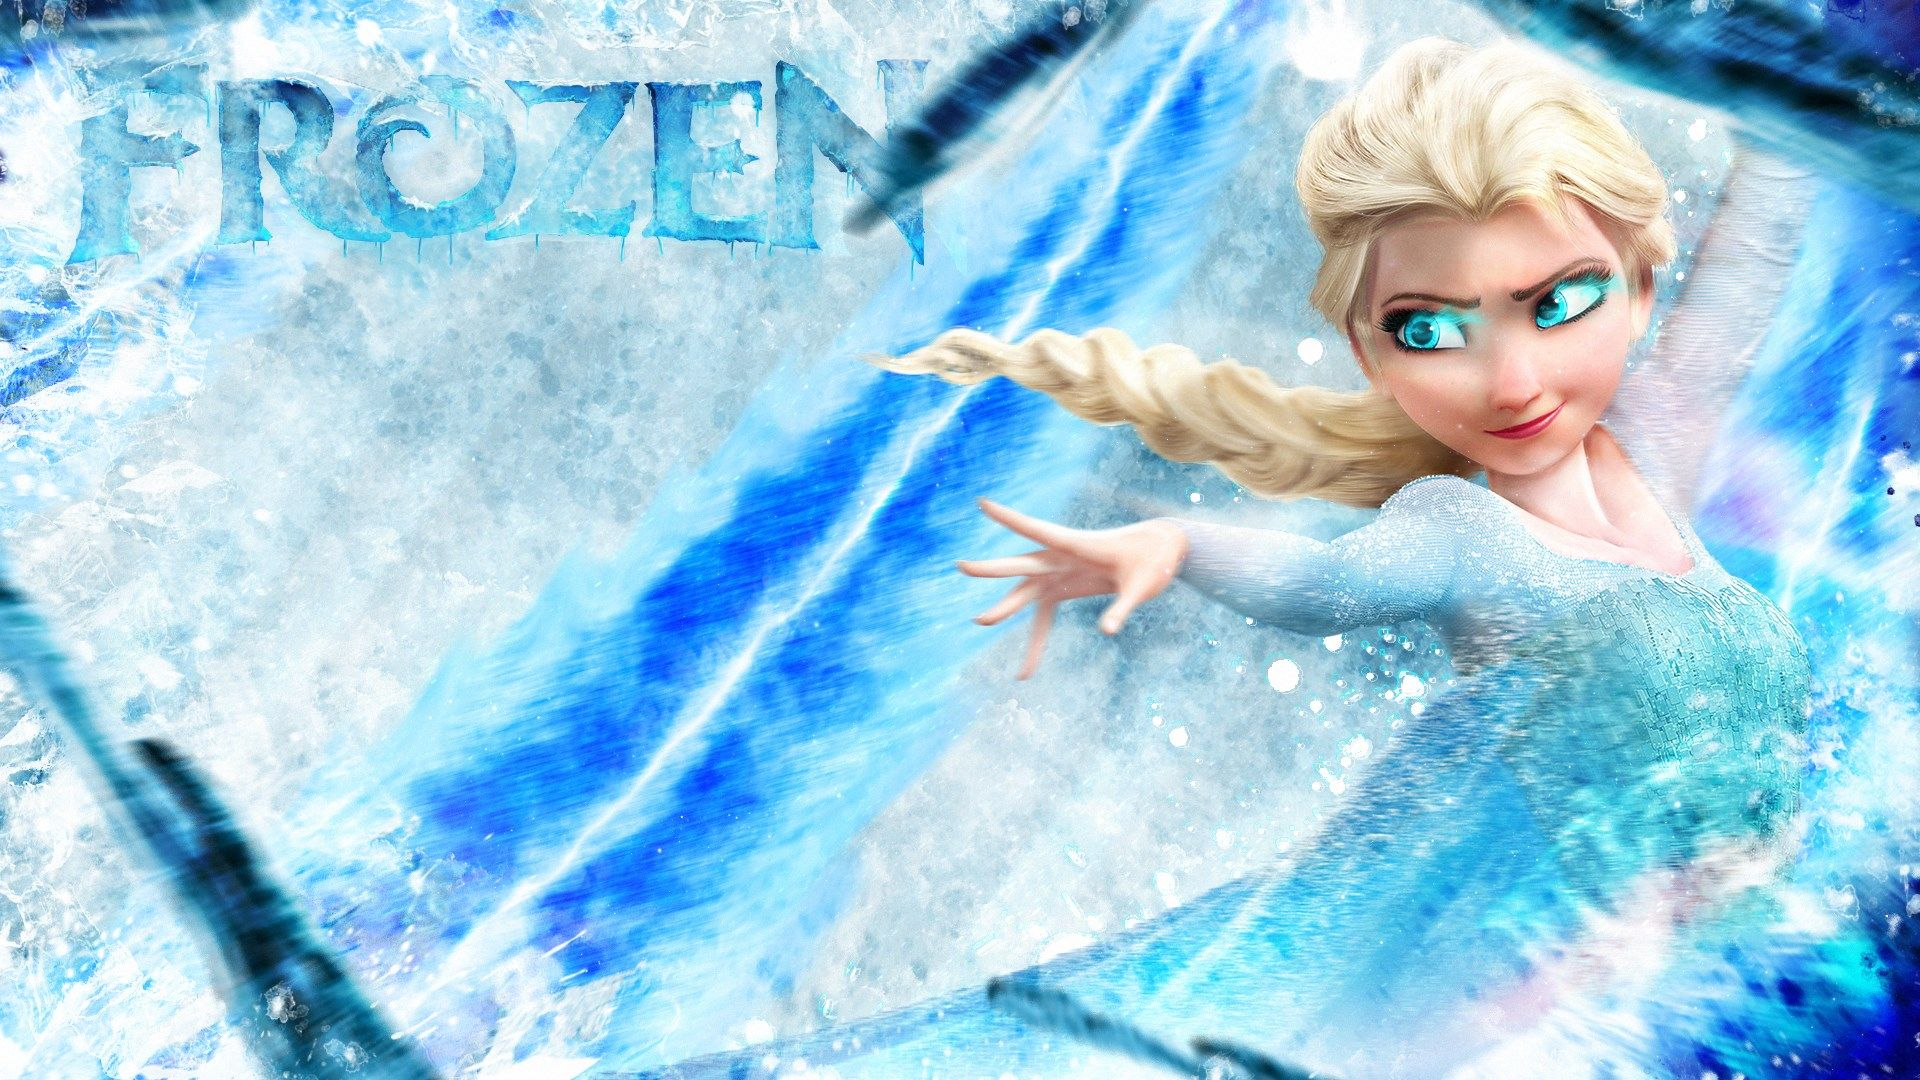 free download elsa frozen wallpapers hd | ololoshenka | pinterest